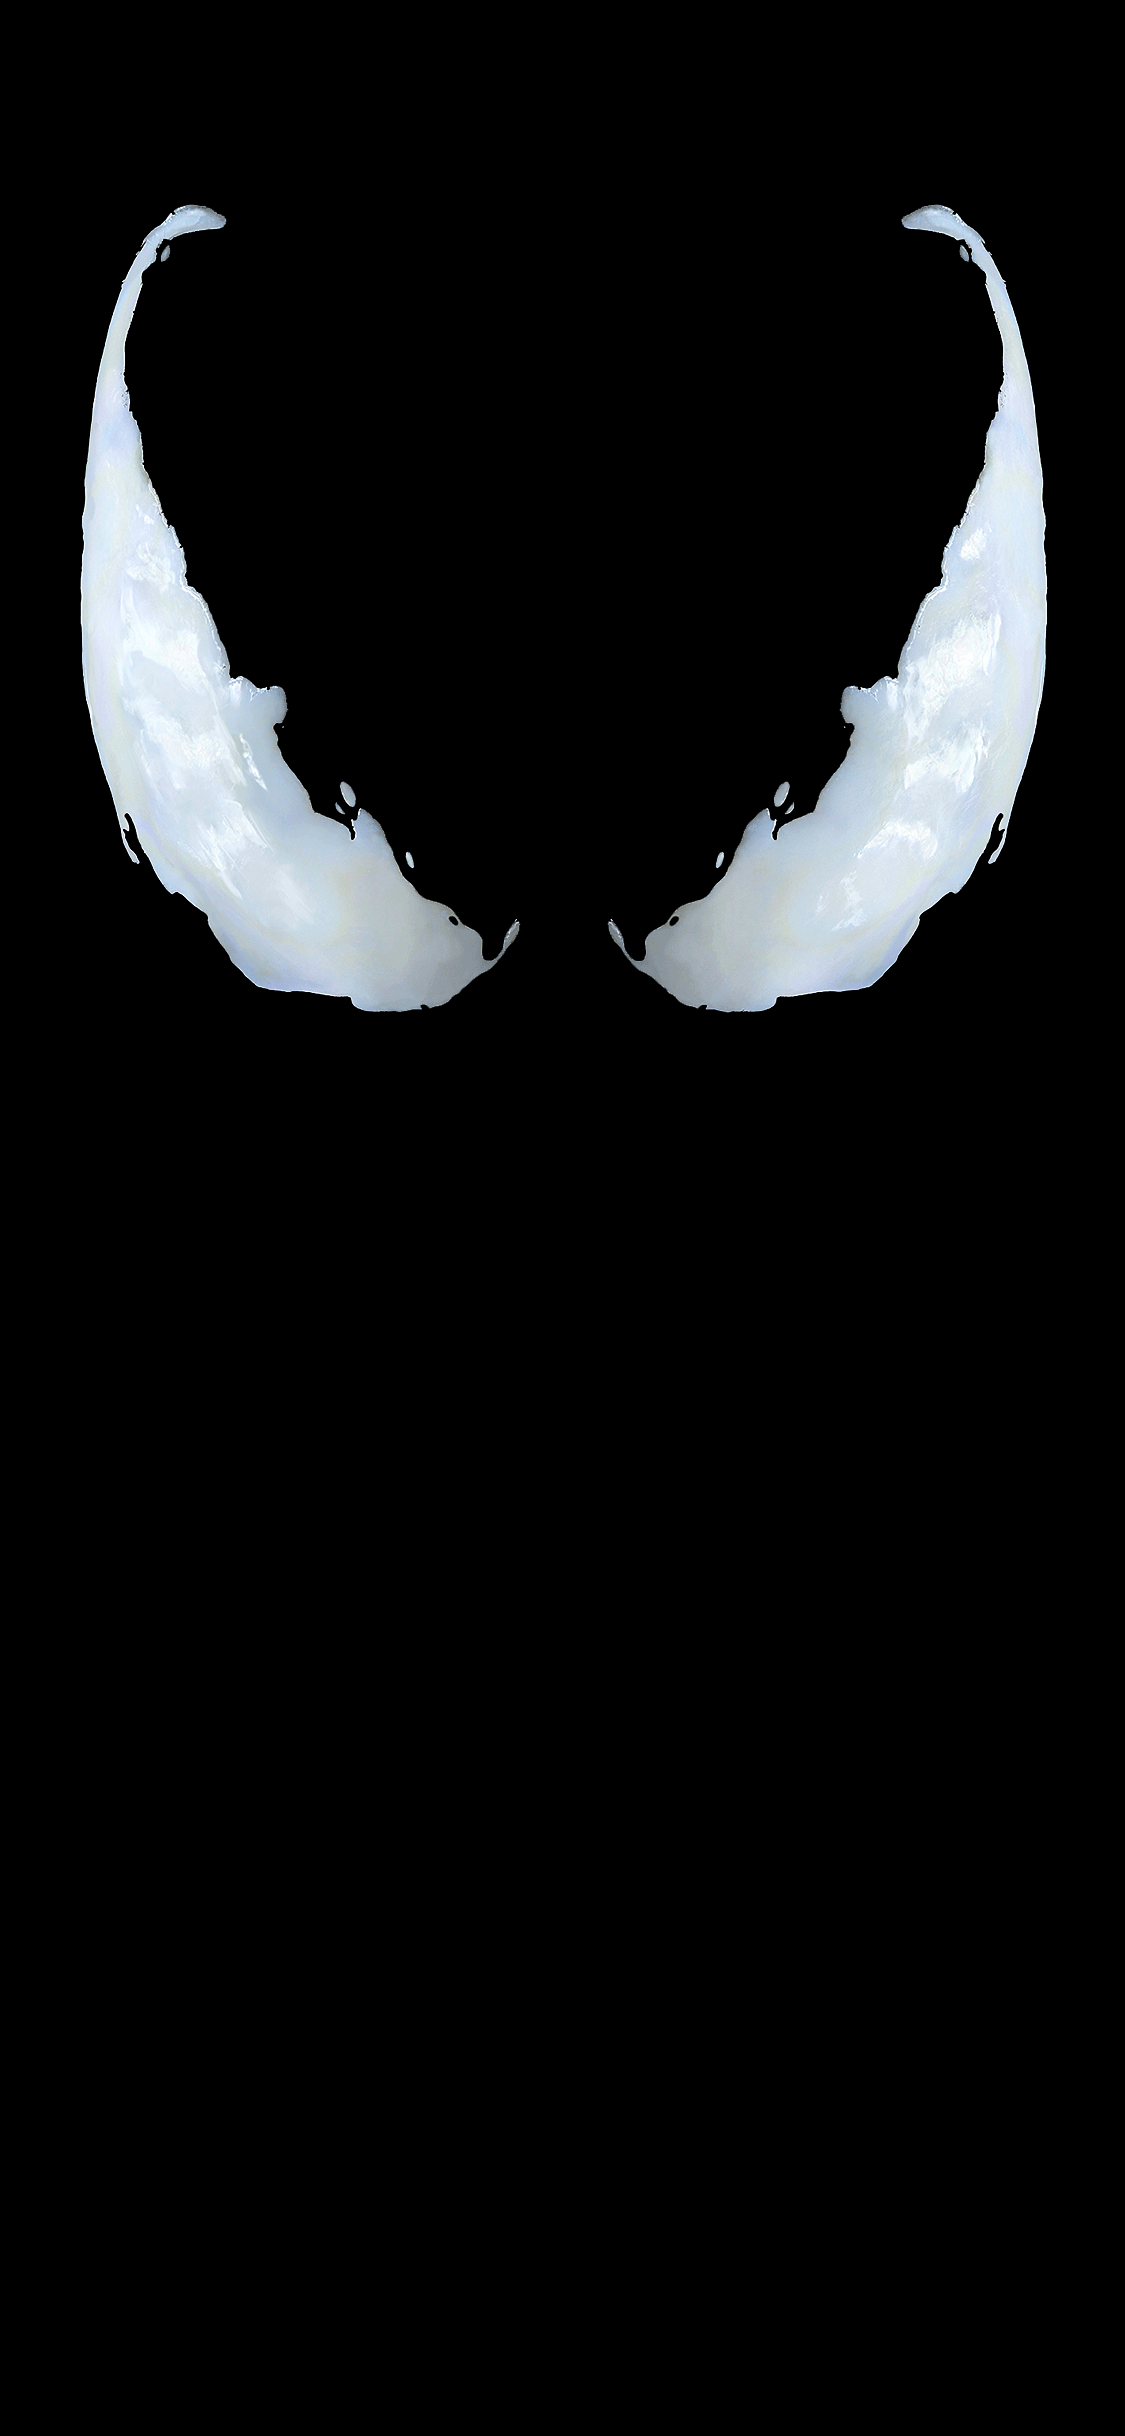 iPhone wallpaper venom movie dark Fonds d'écran iPhone du 10/10/2018